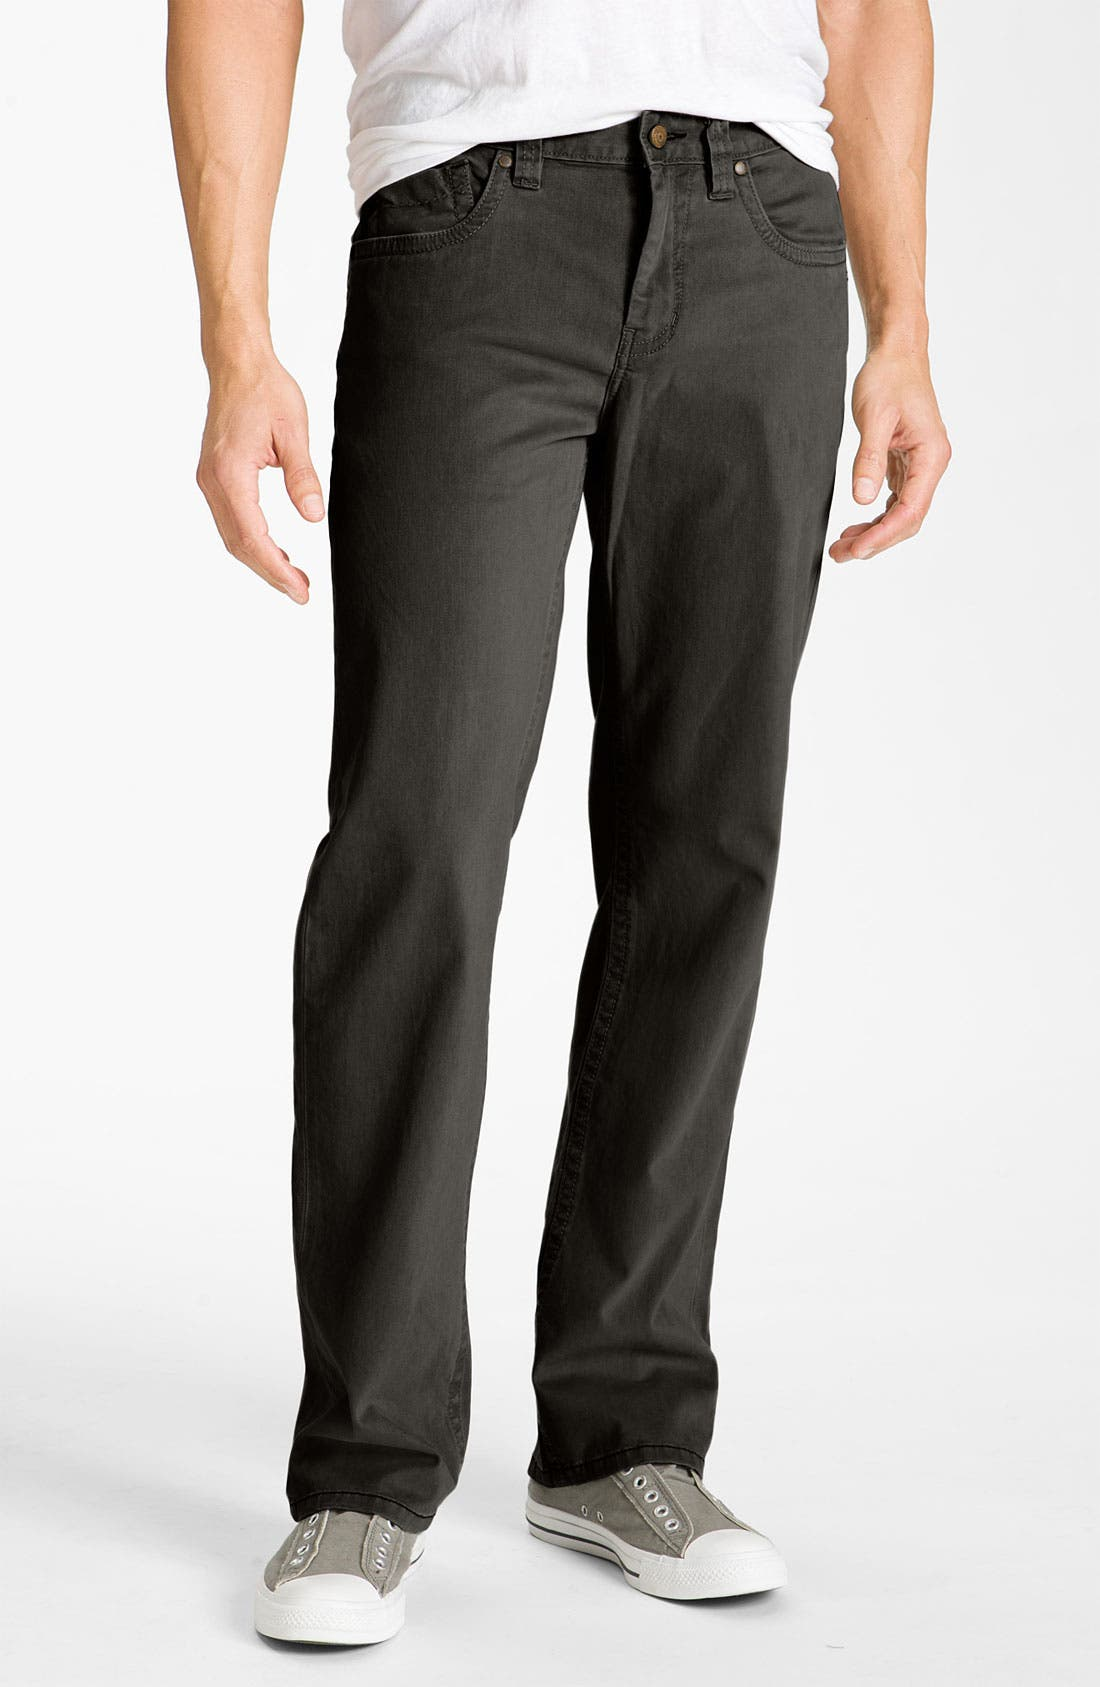 Alternate Image 1 Selected - Tommy Bahama Denim 'Twill Smith' Standard Fit Pants